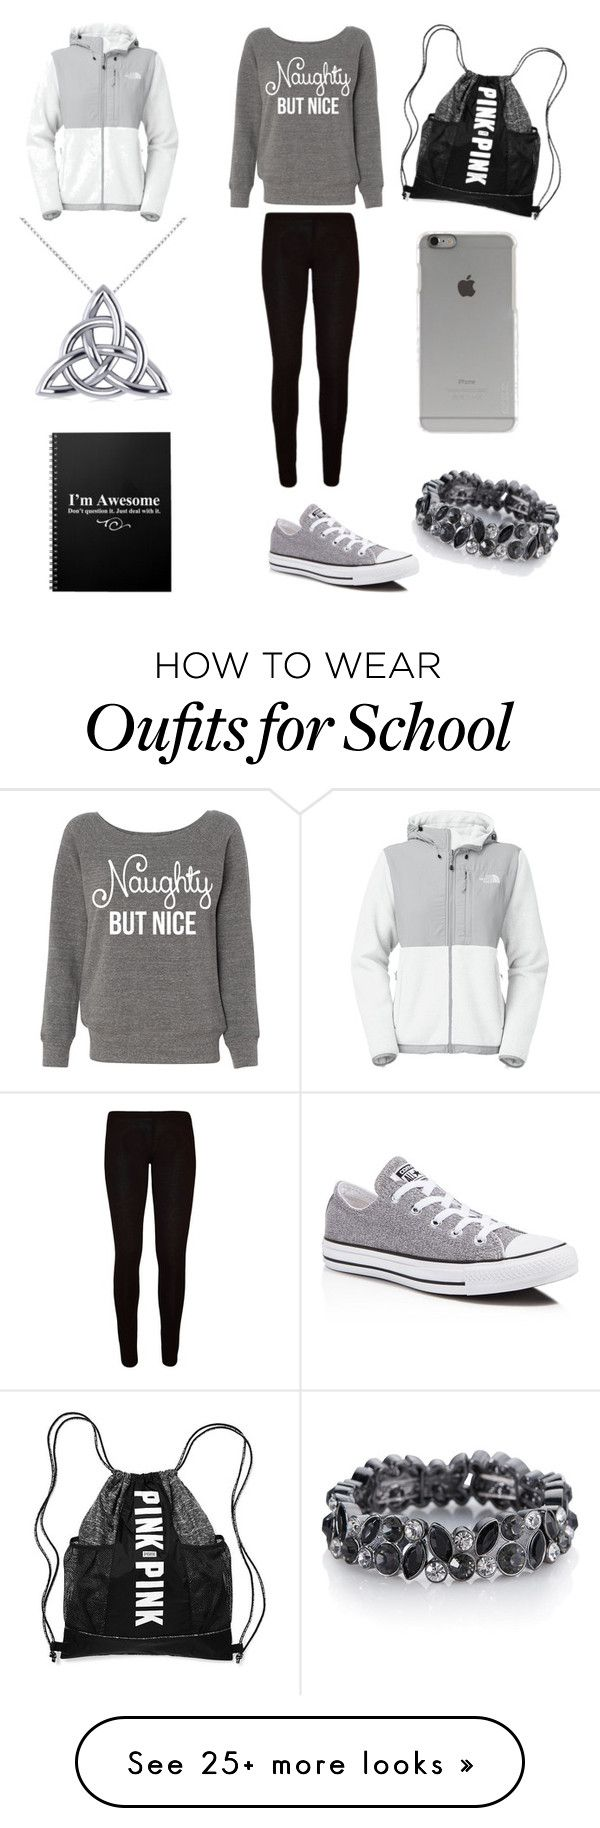 Casual School Outfit #2 by brianawest on Polyvore featuring mode, The North Face, Converse, Incase, The Limited et Allurez